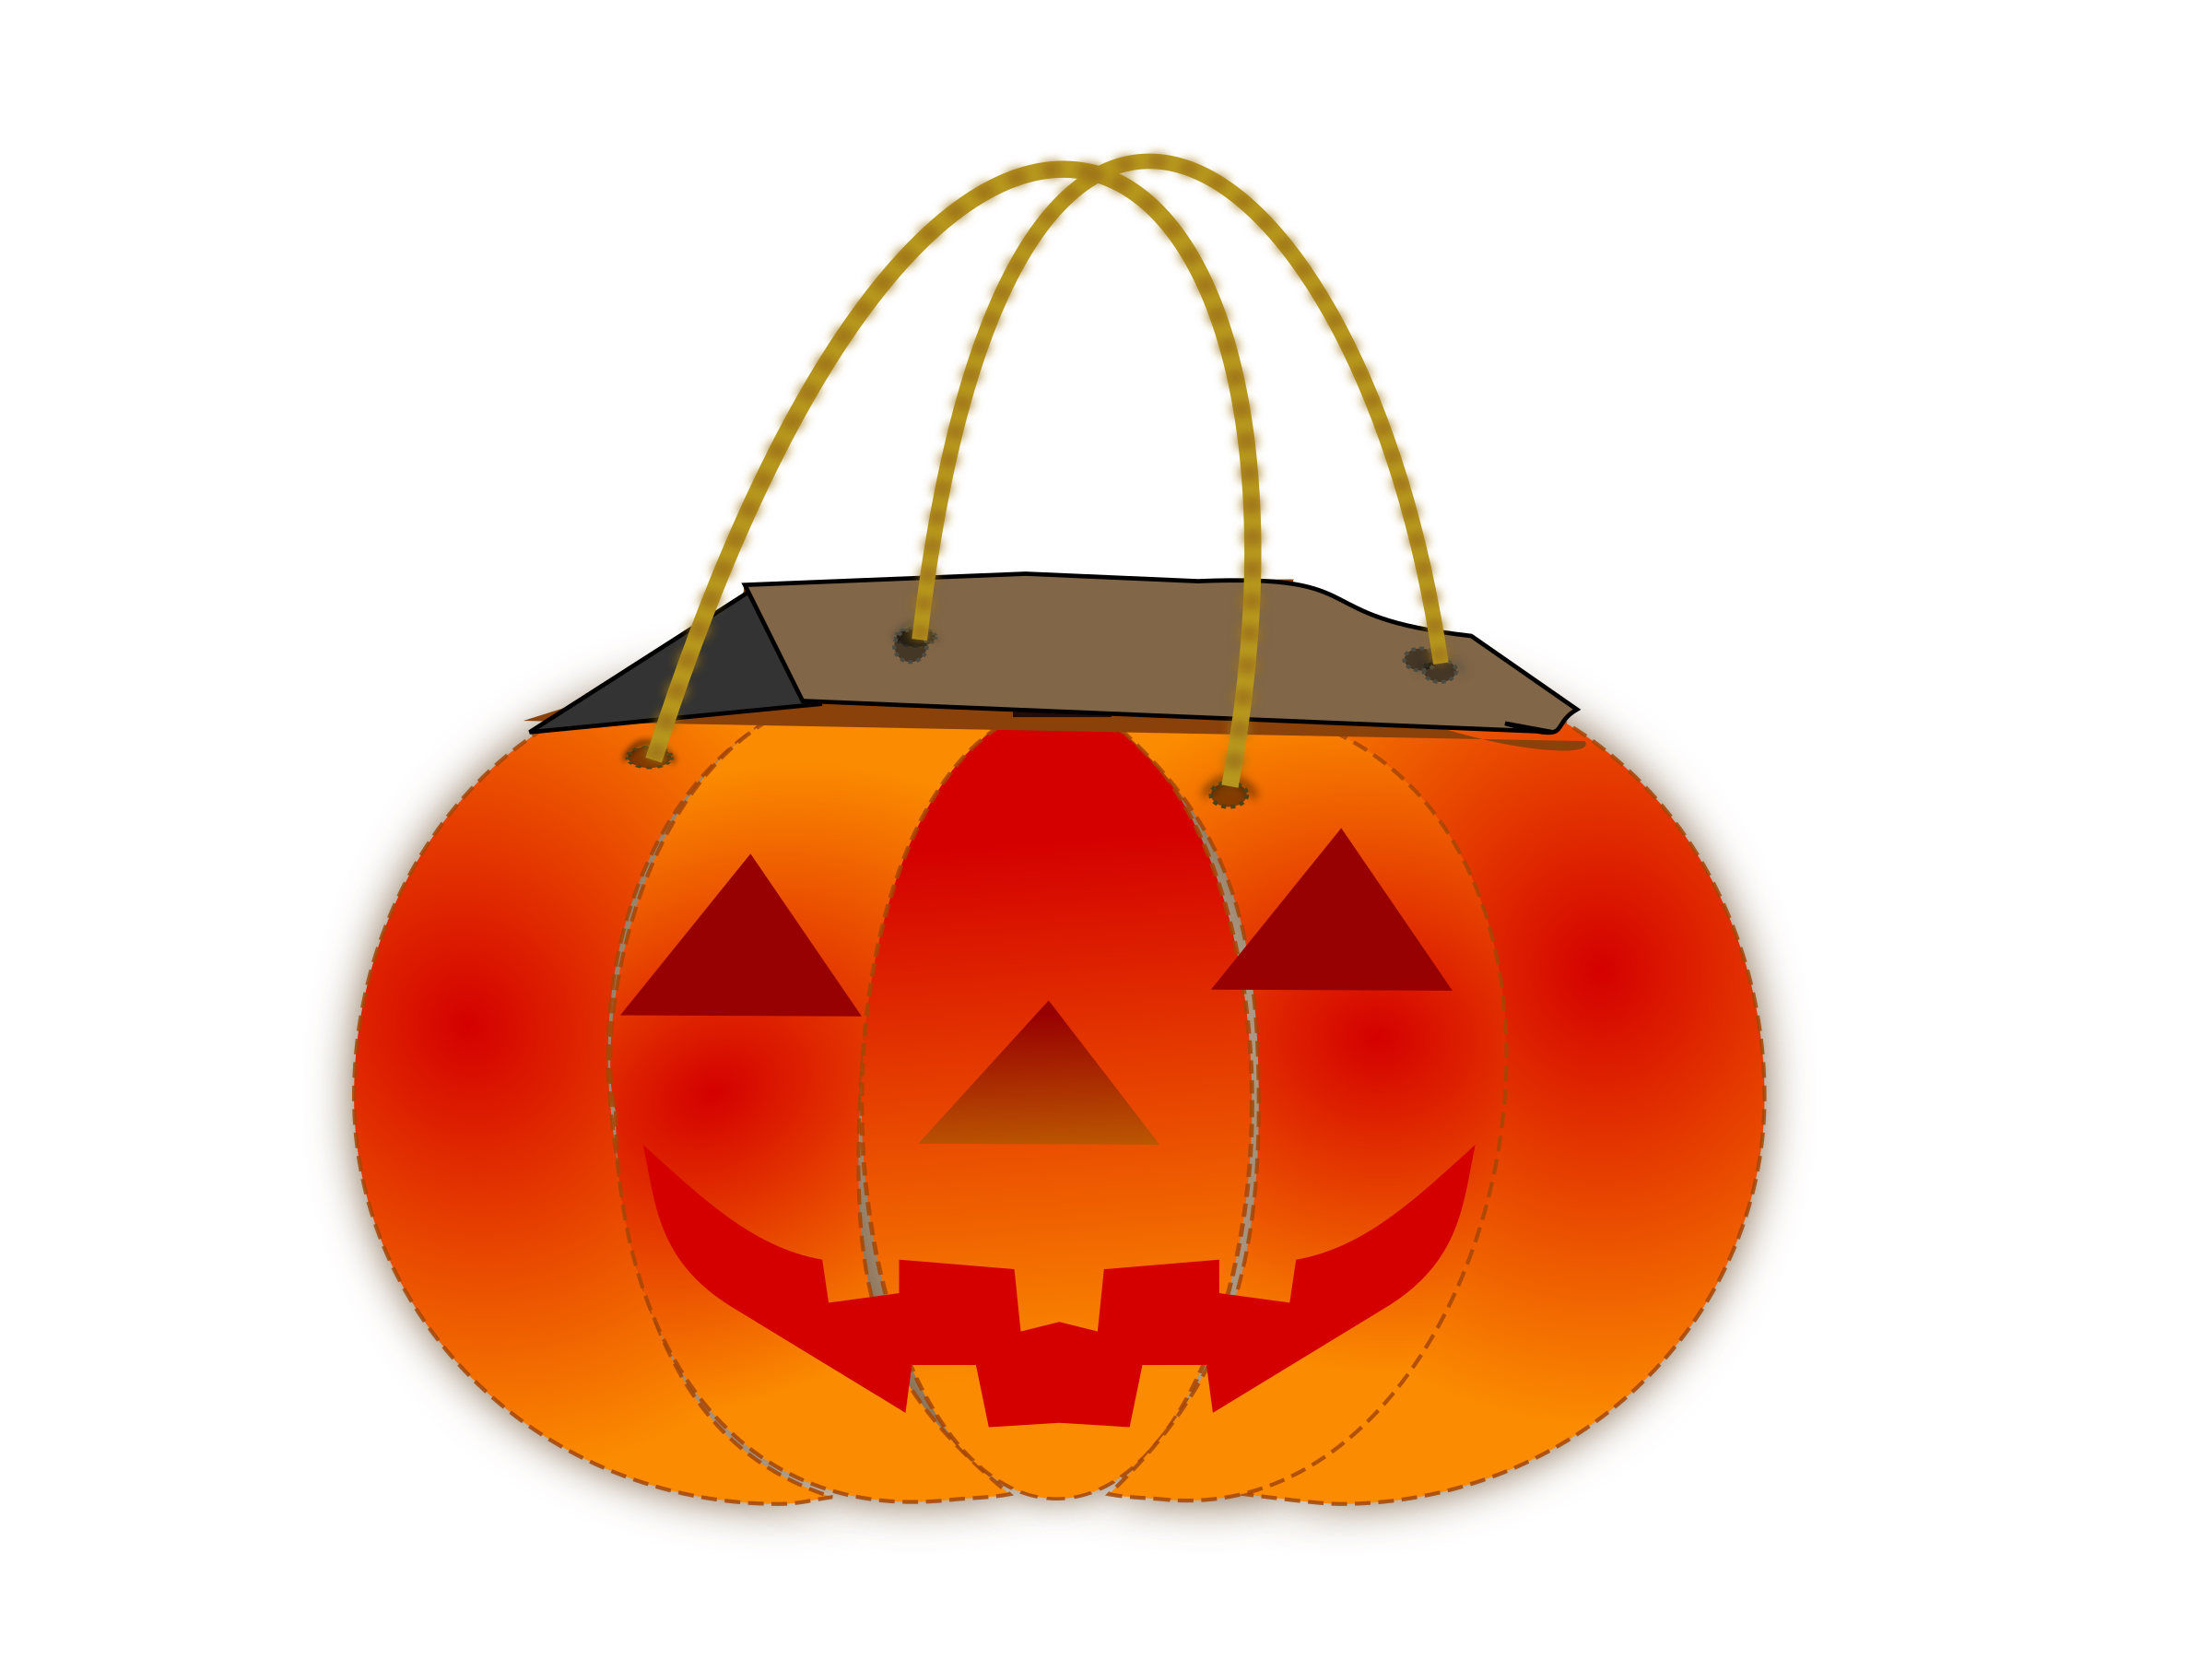 Pumpkin corn clipart image library Clipart - Trick Or Treat Bag 2 image library